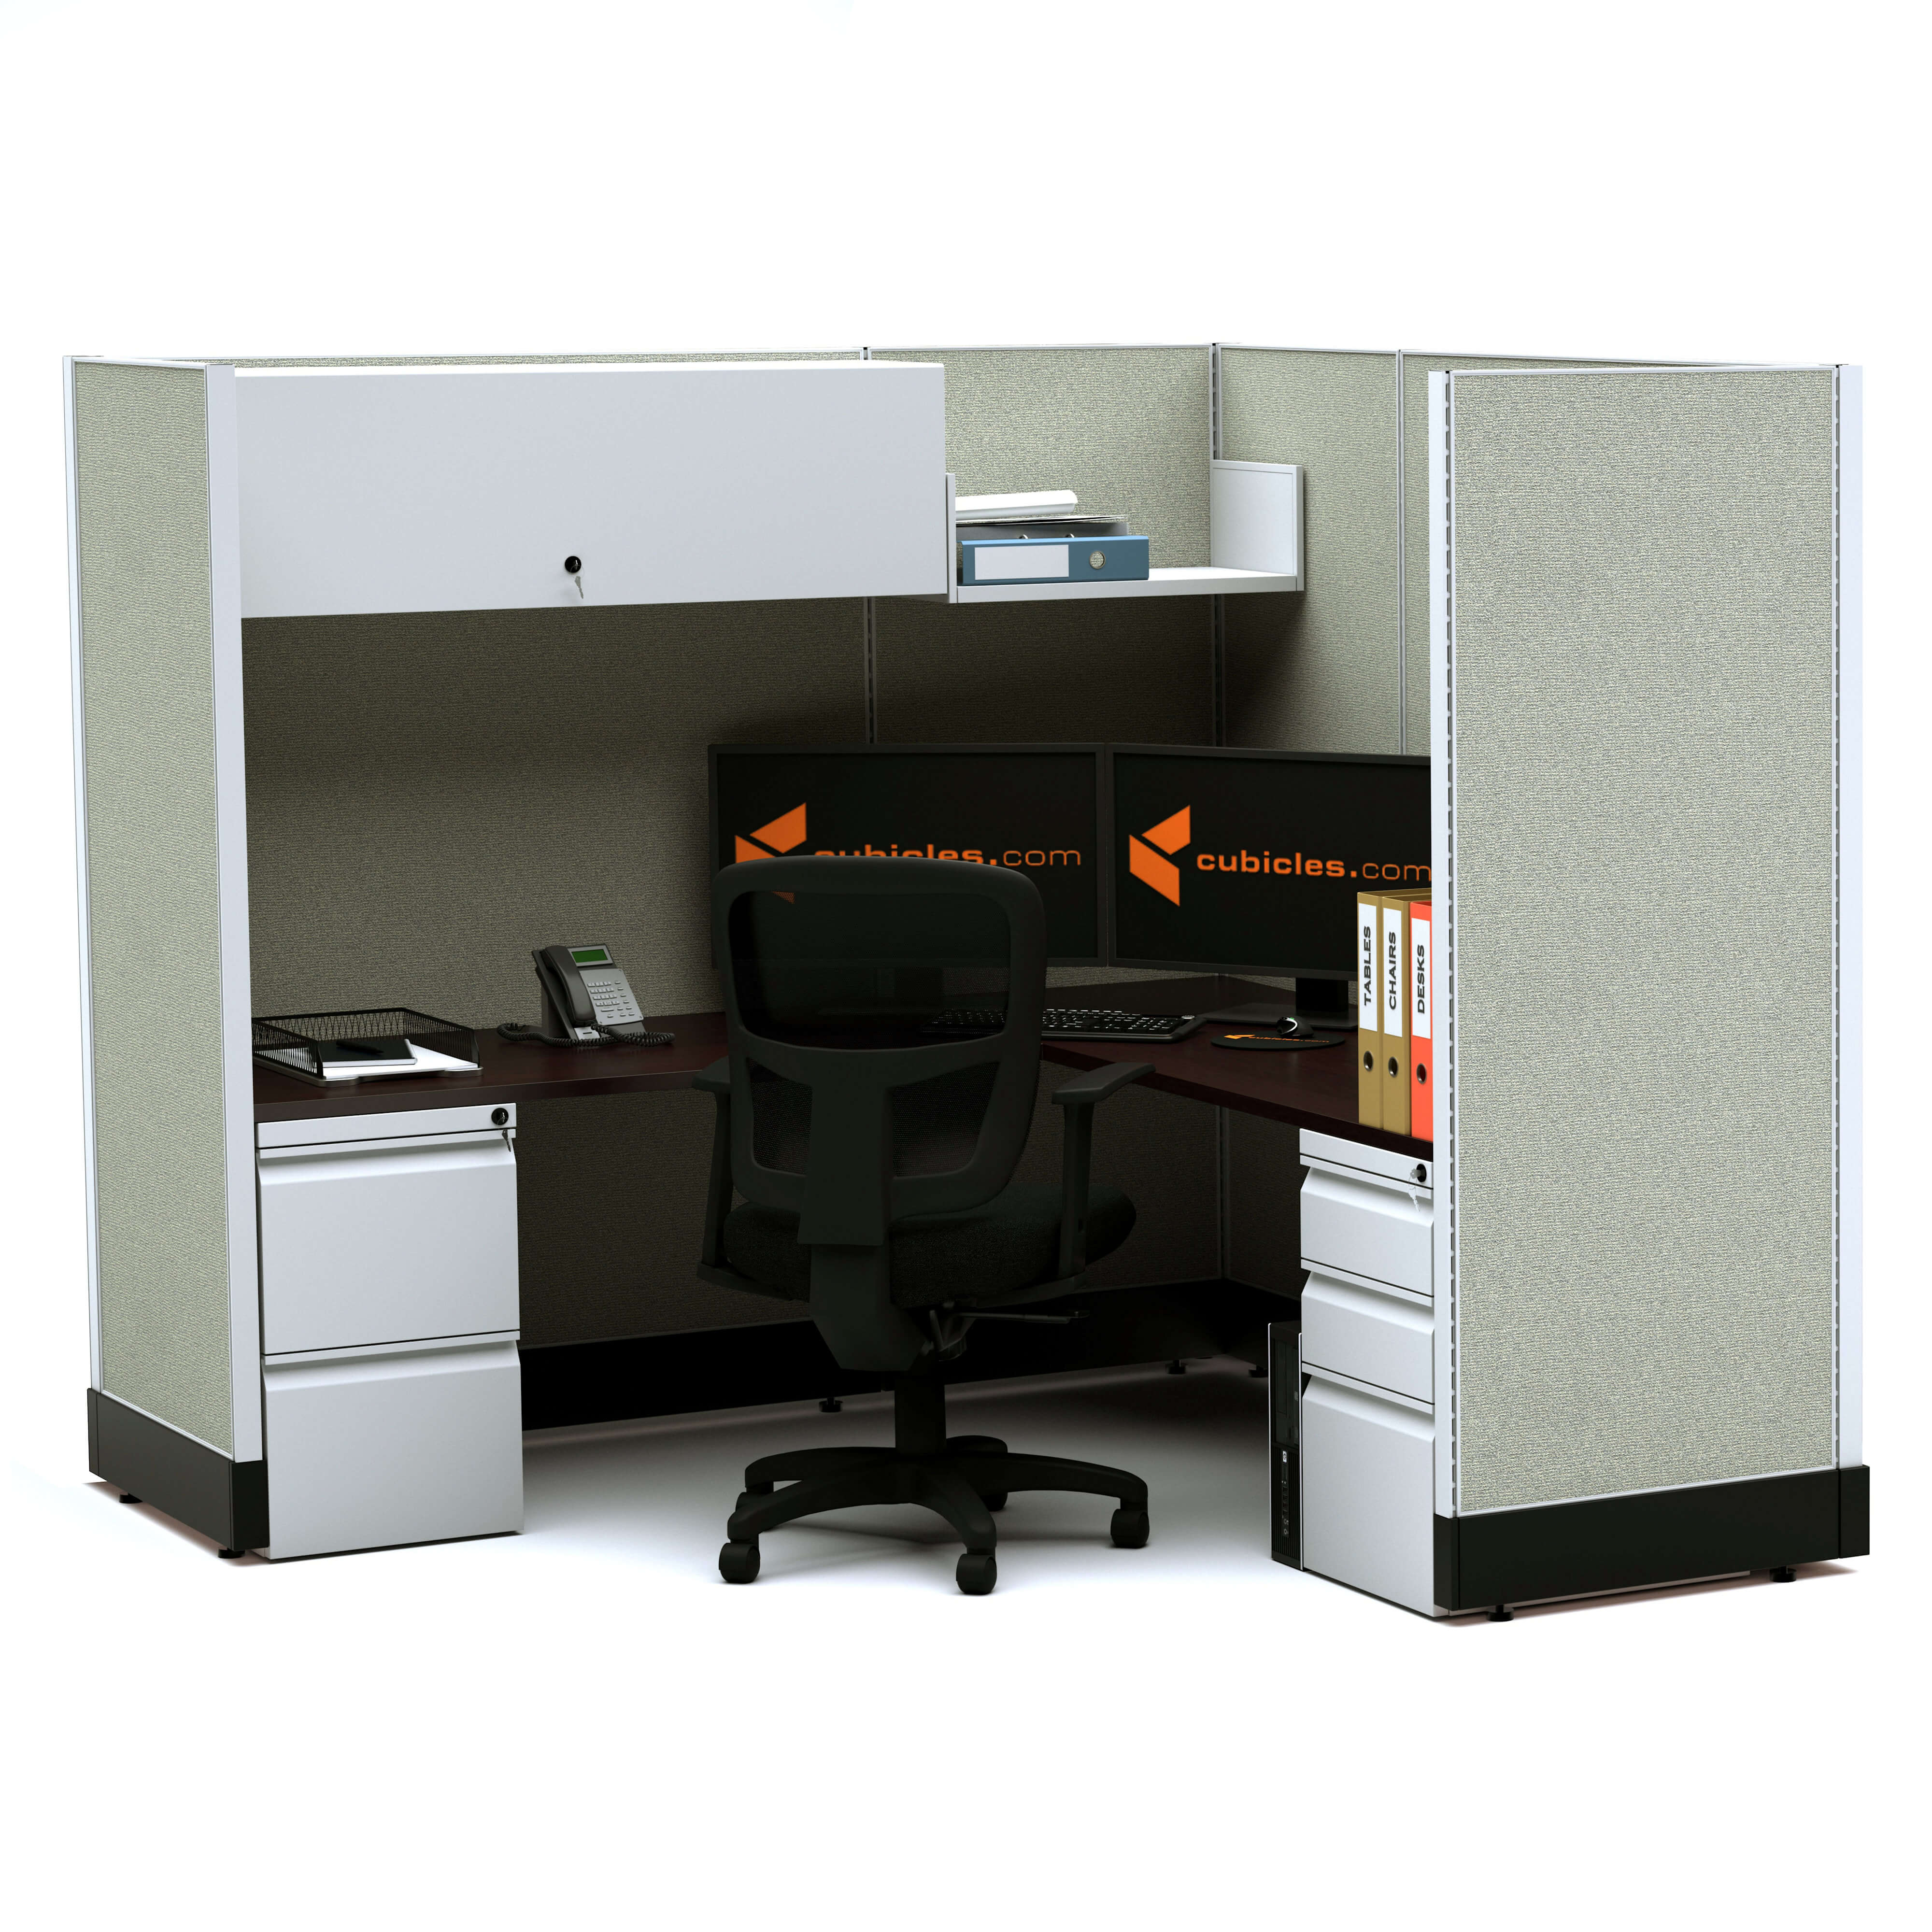 modular-office-furniture-modular-office-desk-furniture-67-unpowered.jpg